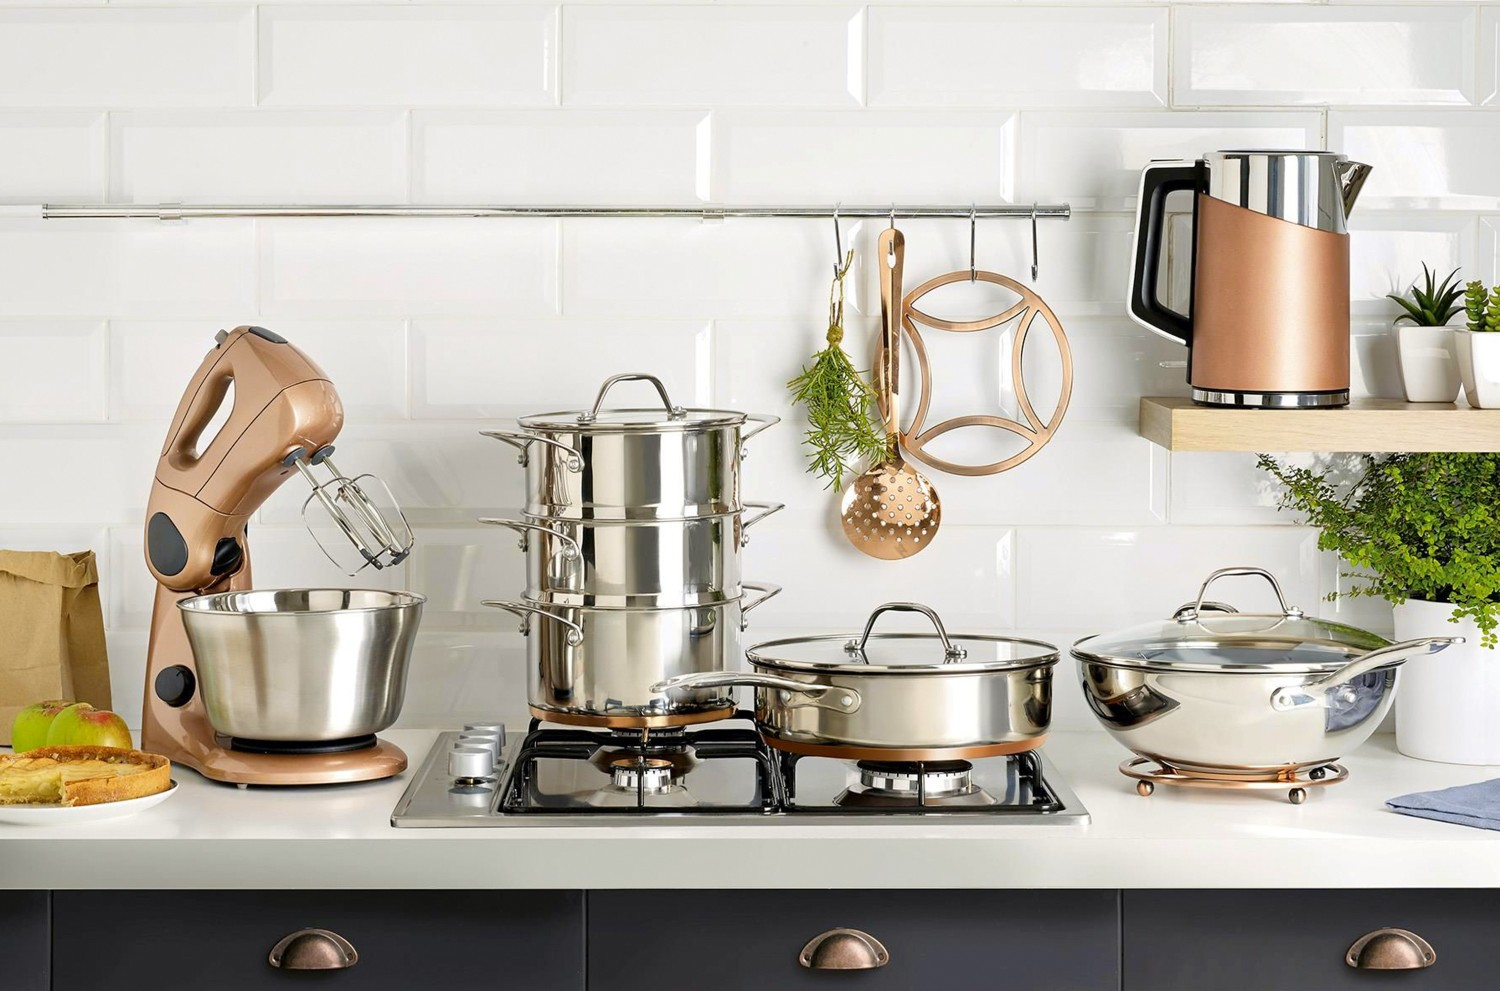 Clean copper and black kitchen